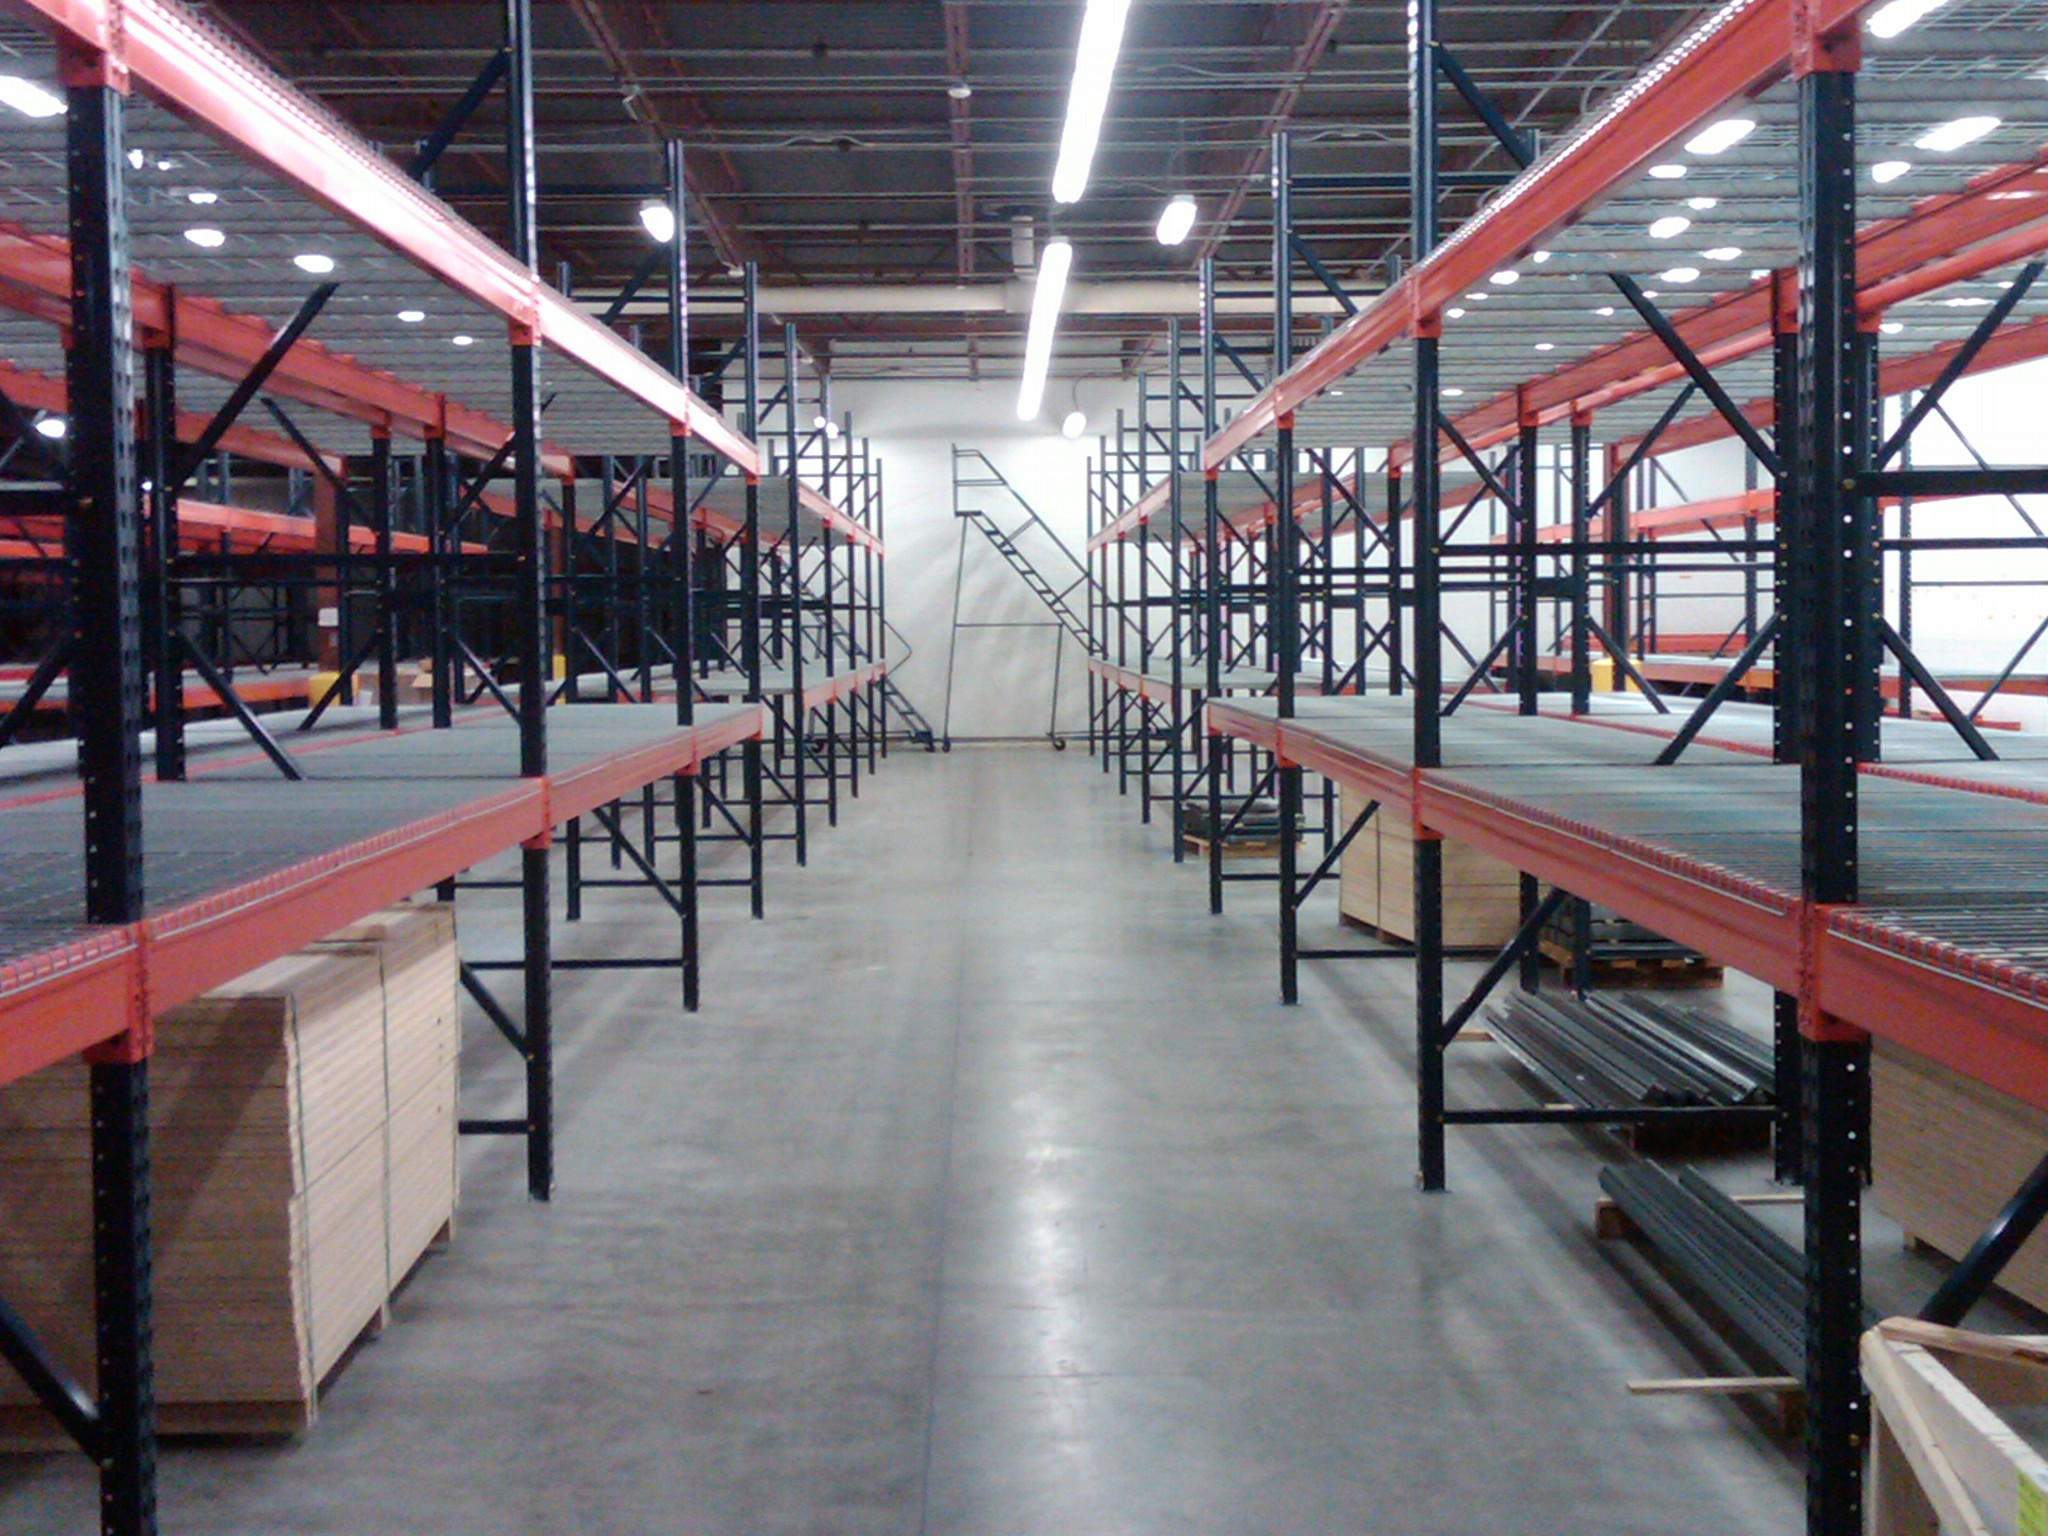 Pallet Rack Installation, Pallet Rack, Uprights, Beams, Wire Decks